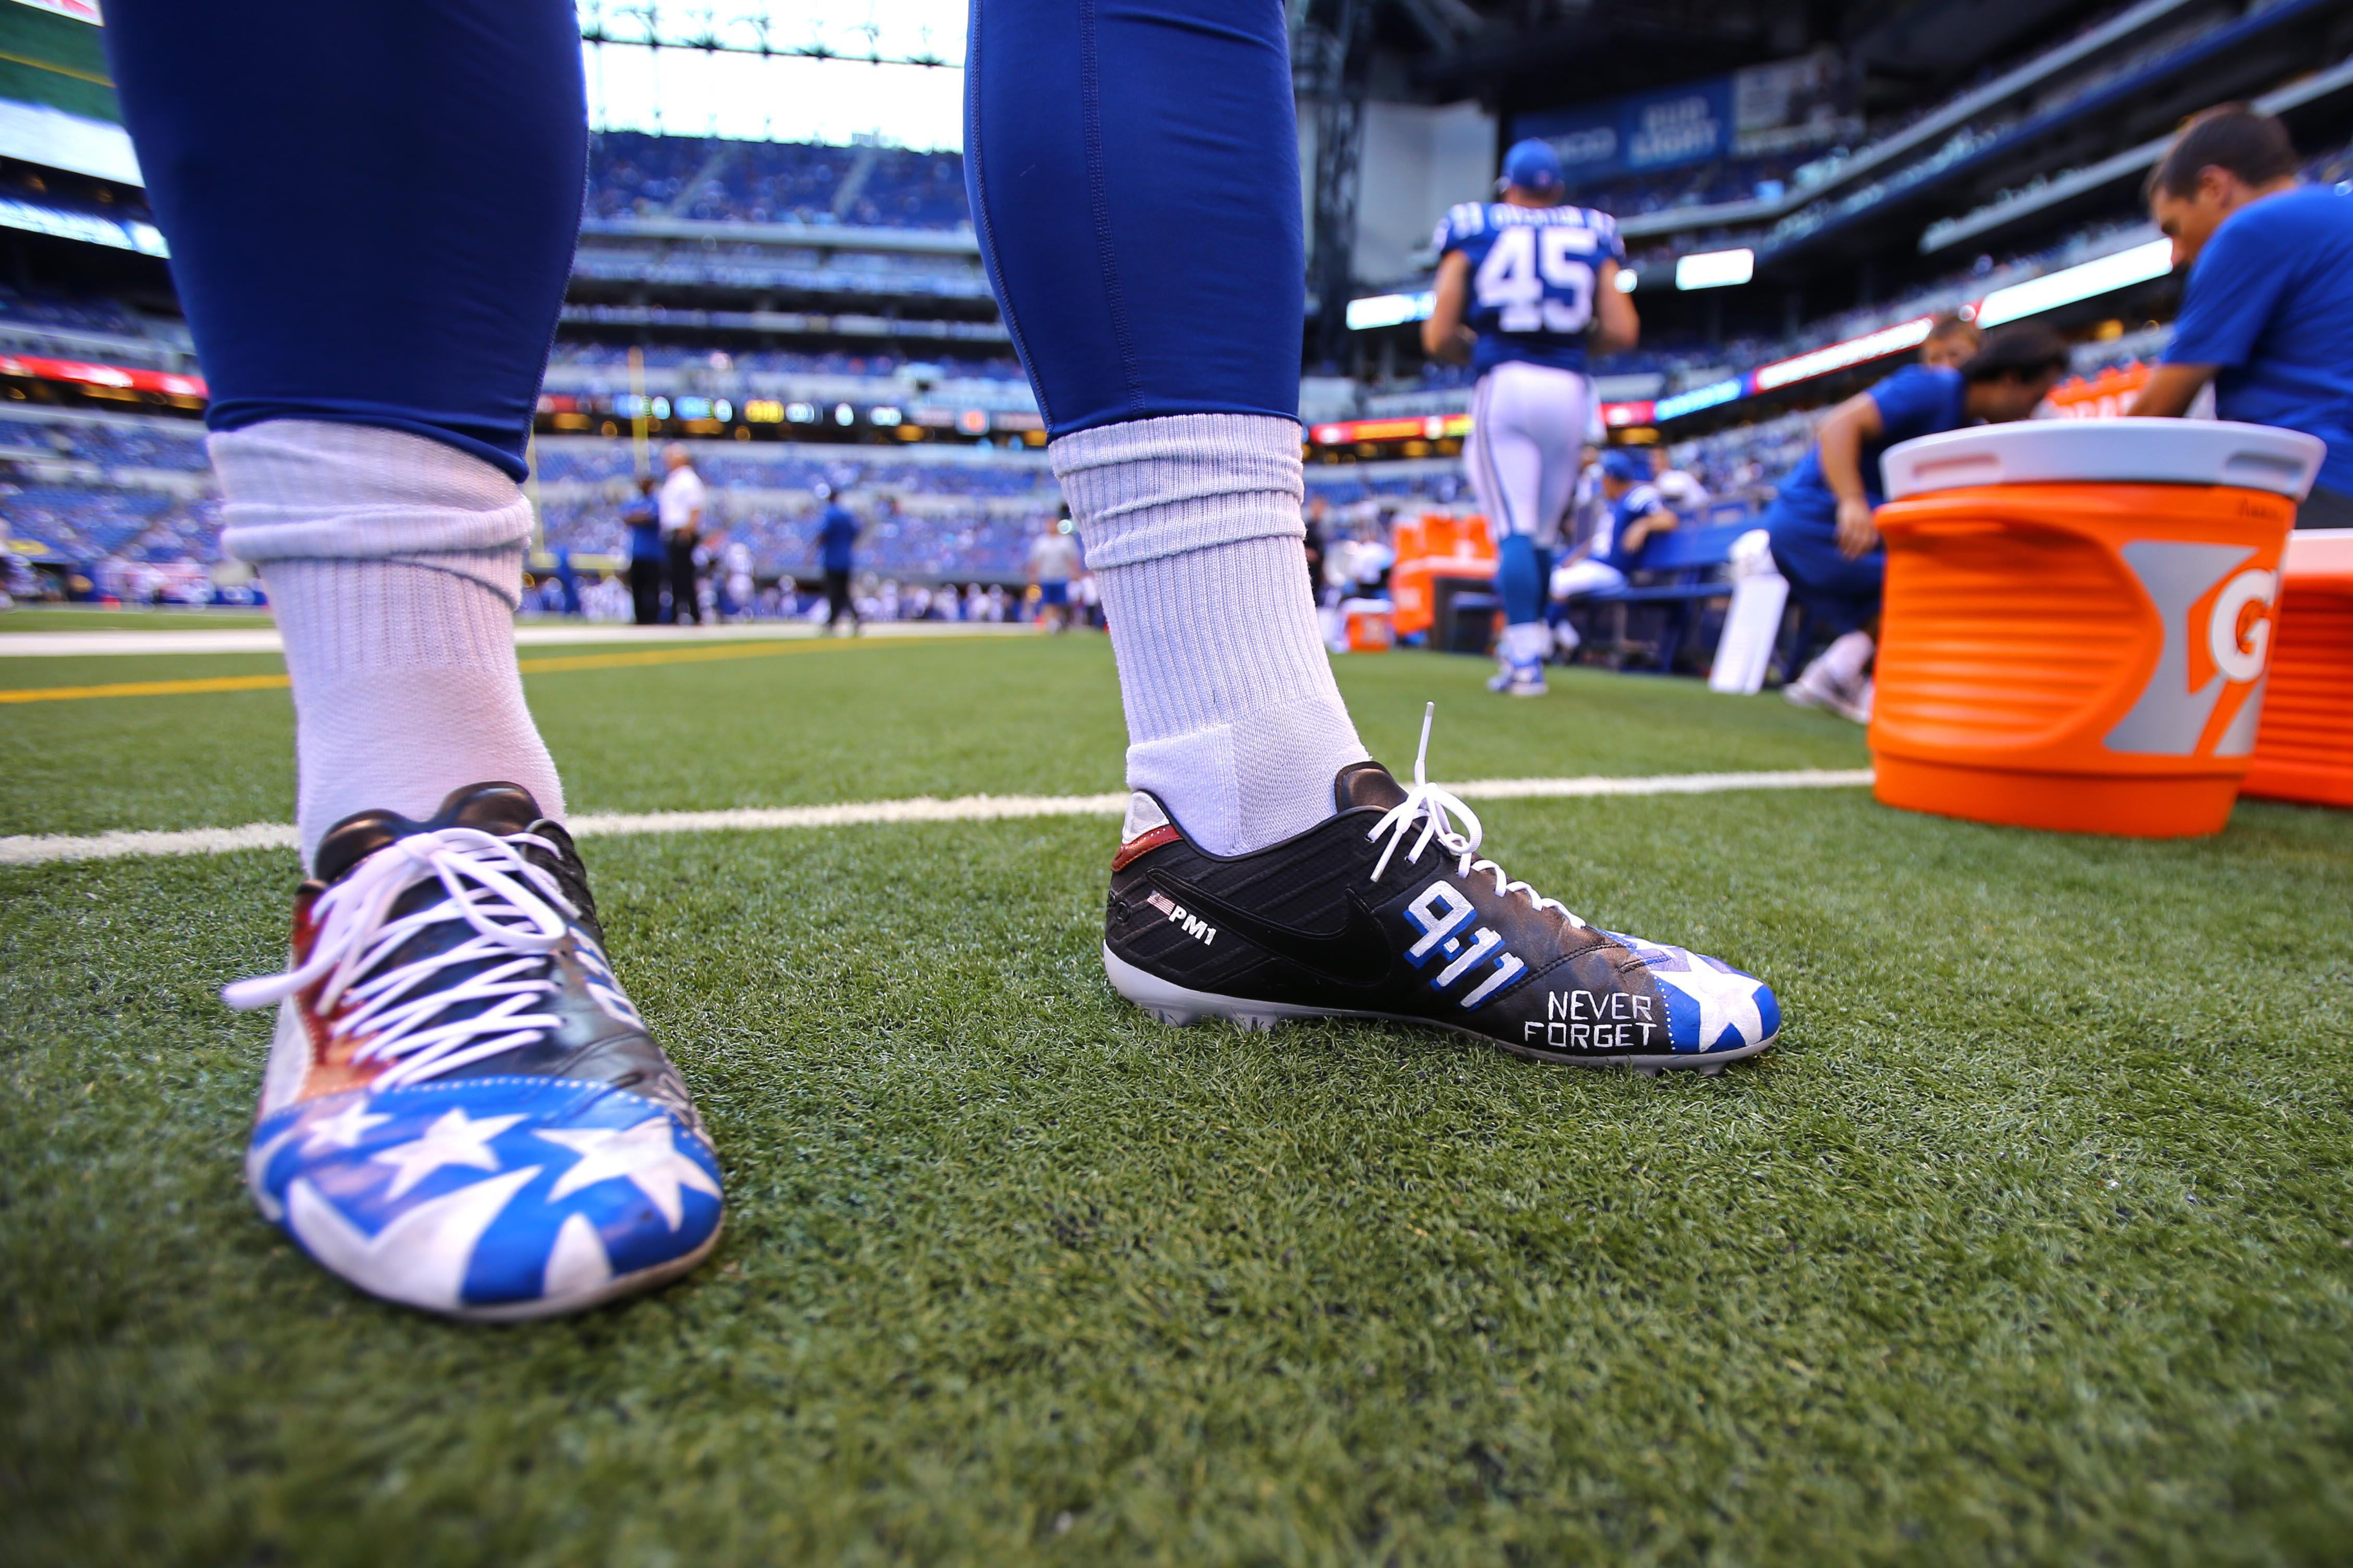 Colts punter Pat McAfee wore cleats to remember 9/11.